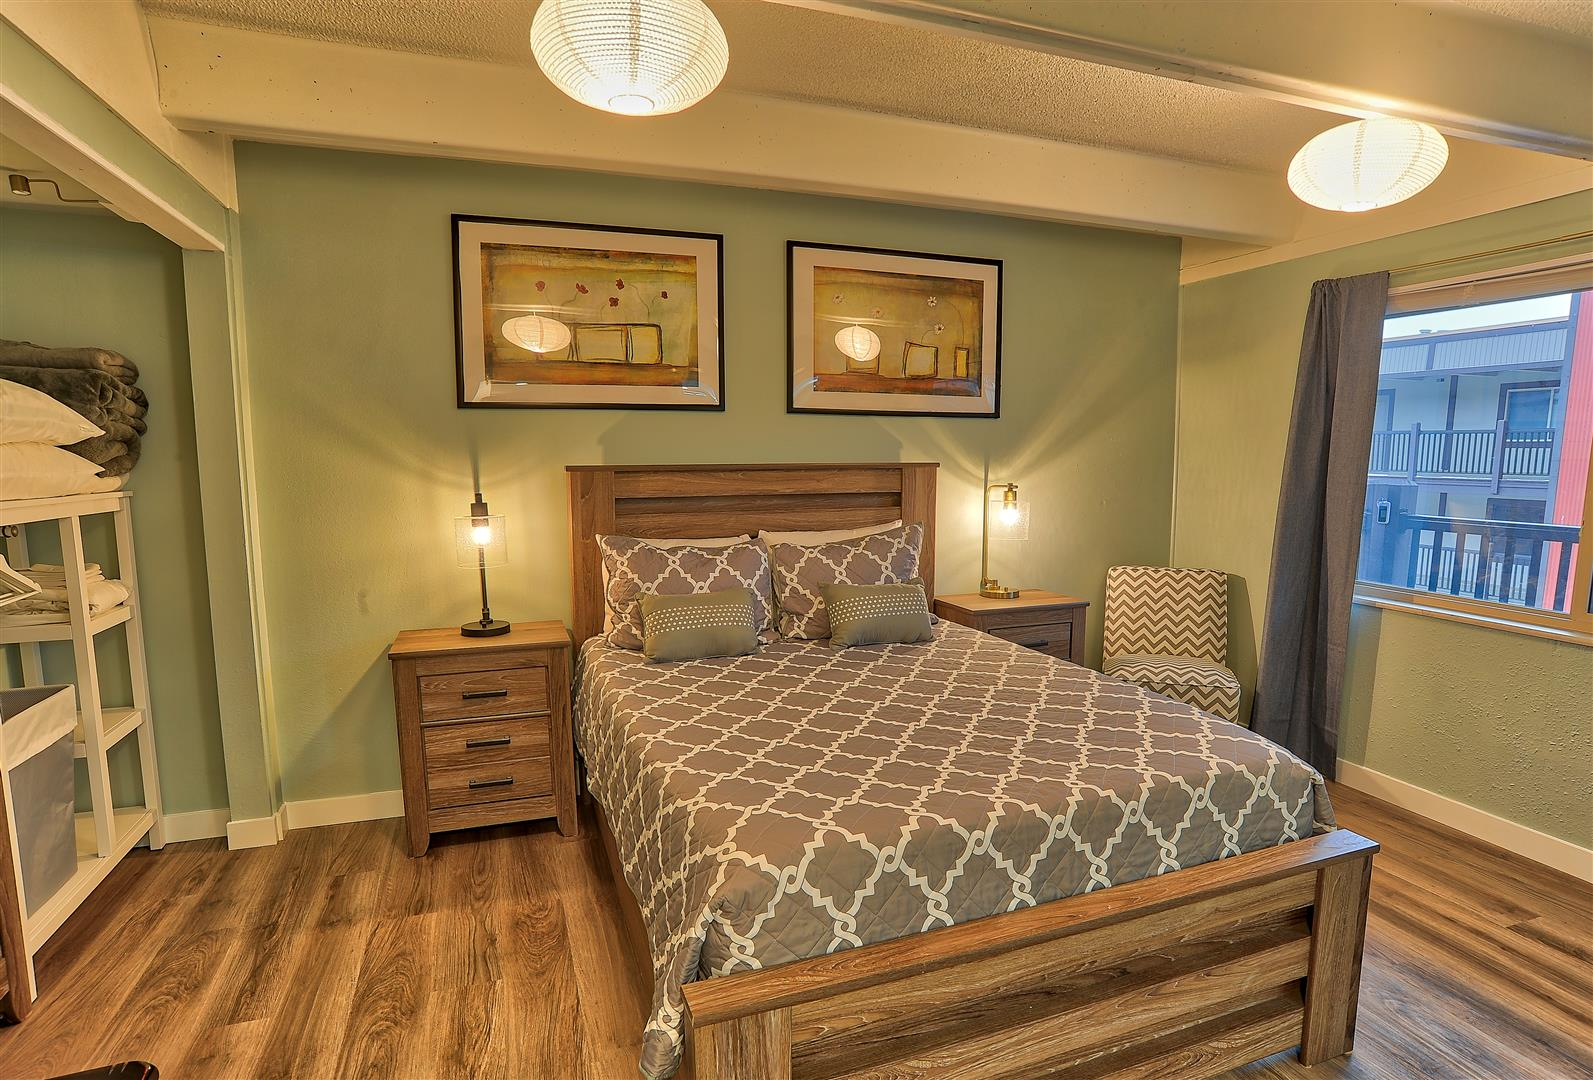 You won't feel cramped in this master bedroom.